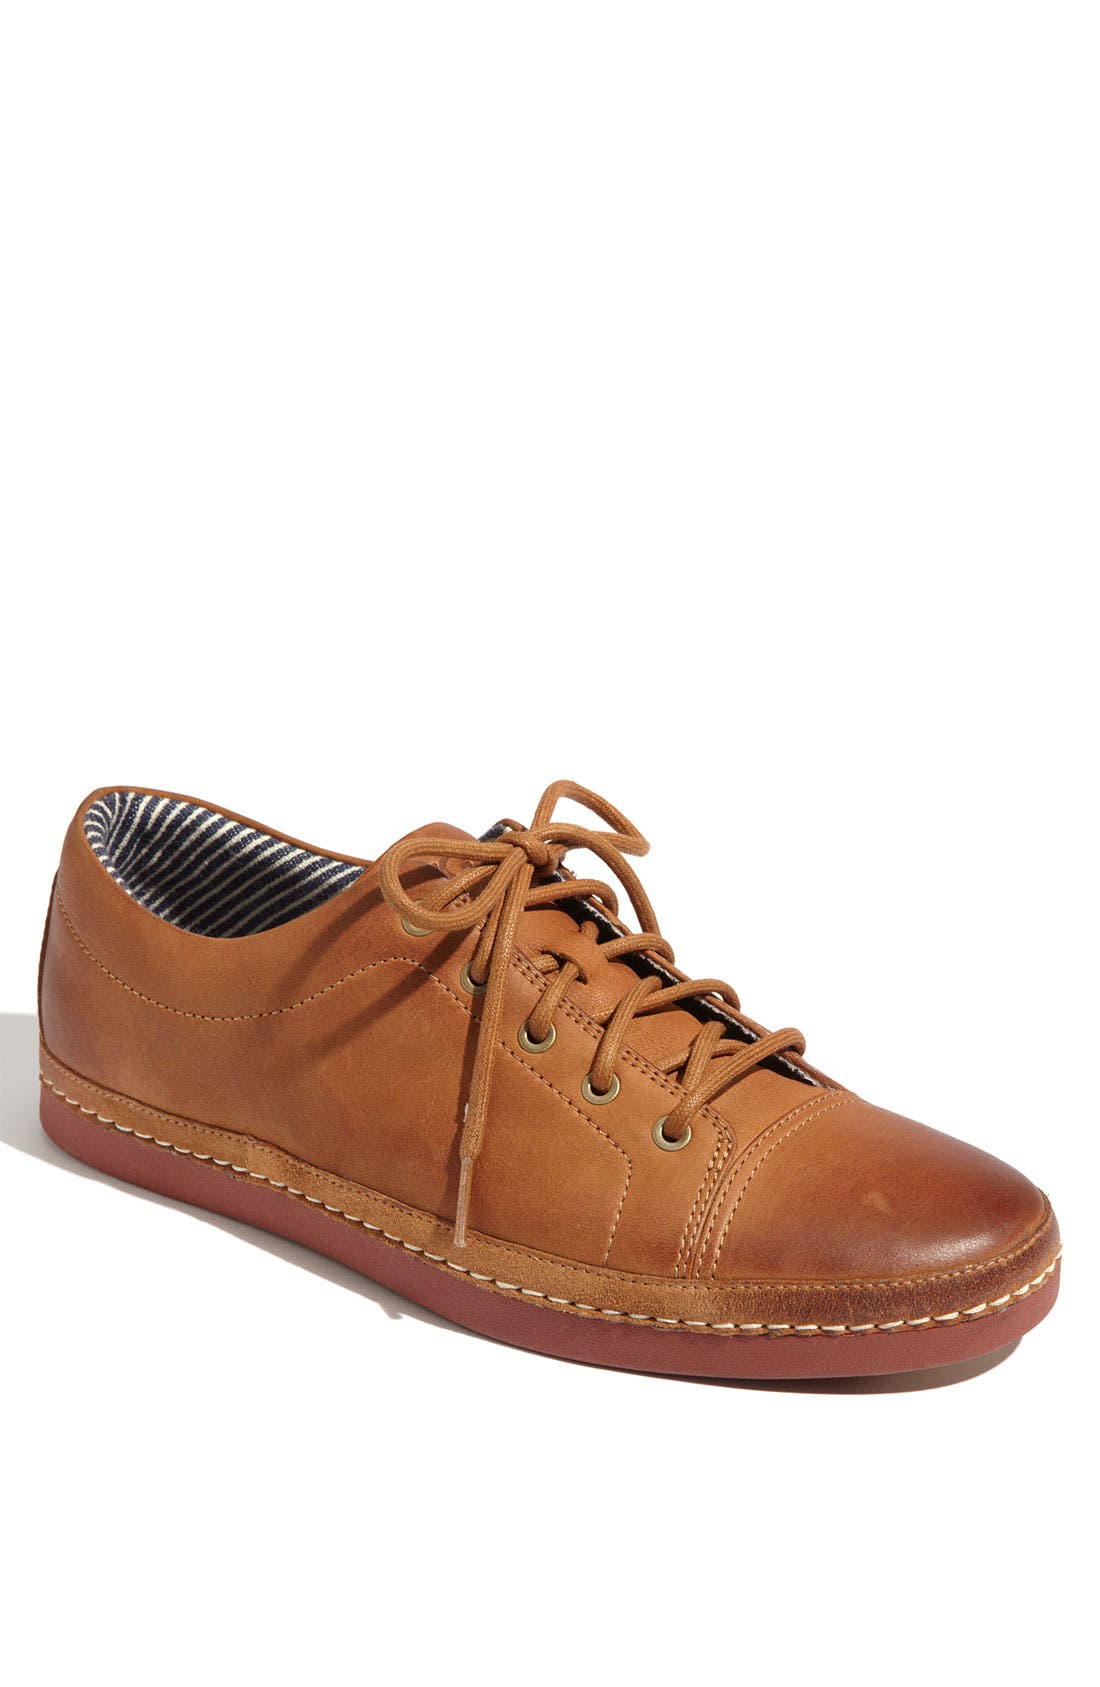 Alternate Image 1 Selected - UGG® Australia 'Duncan Bay' Leather Sneaker (Men)